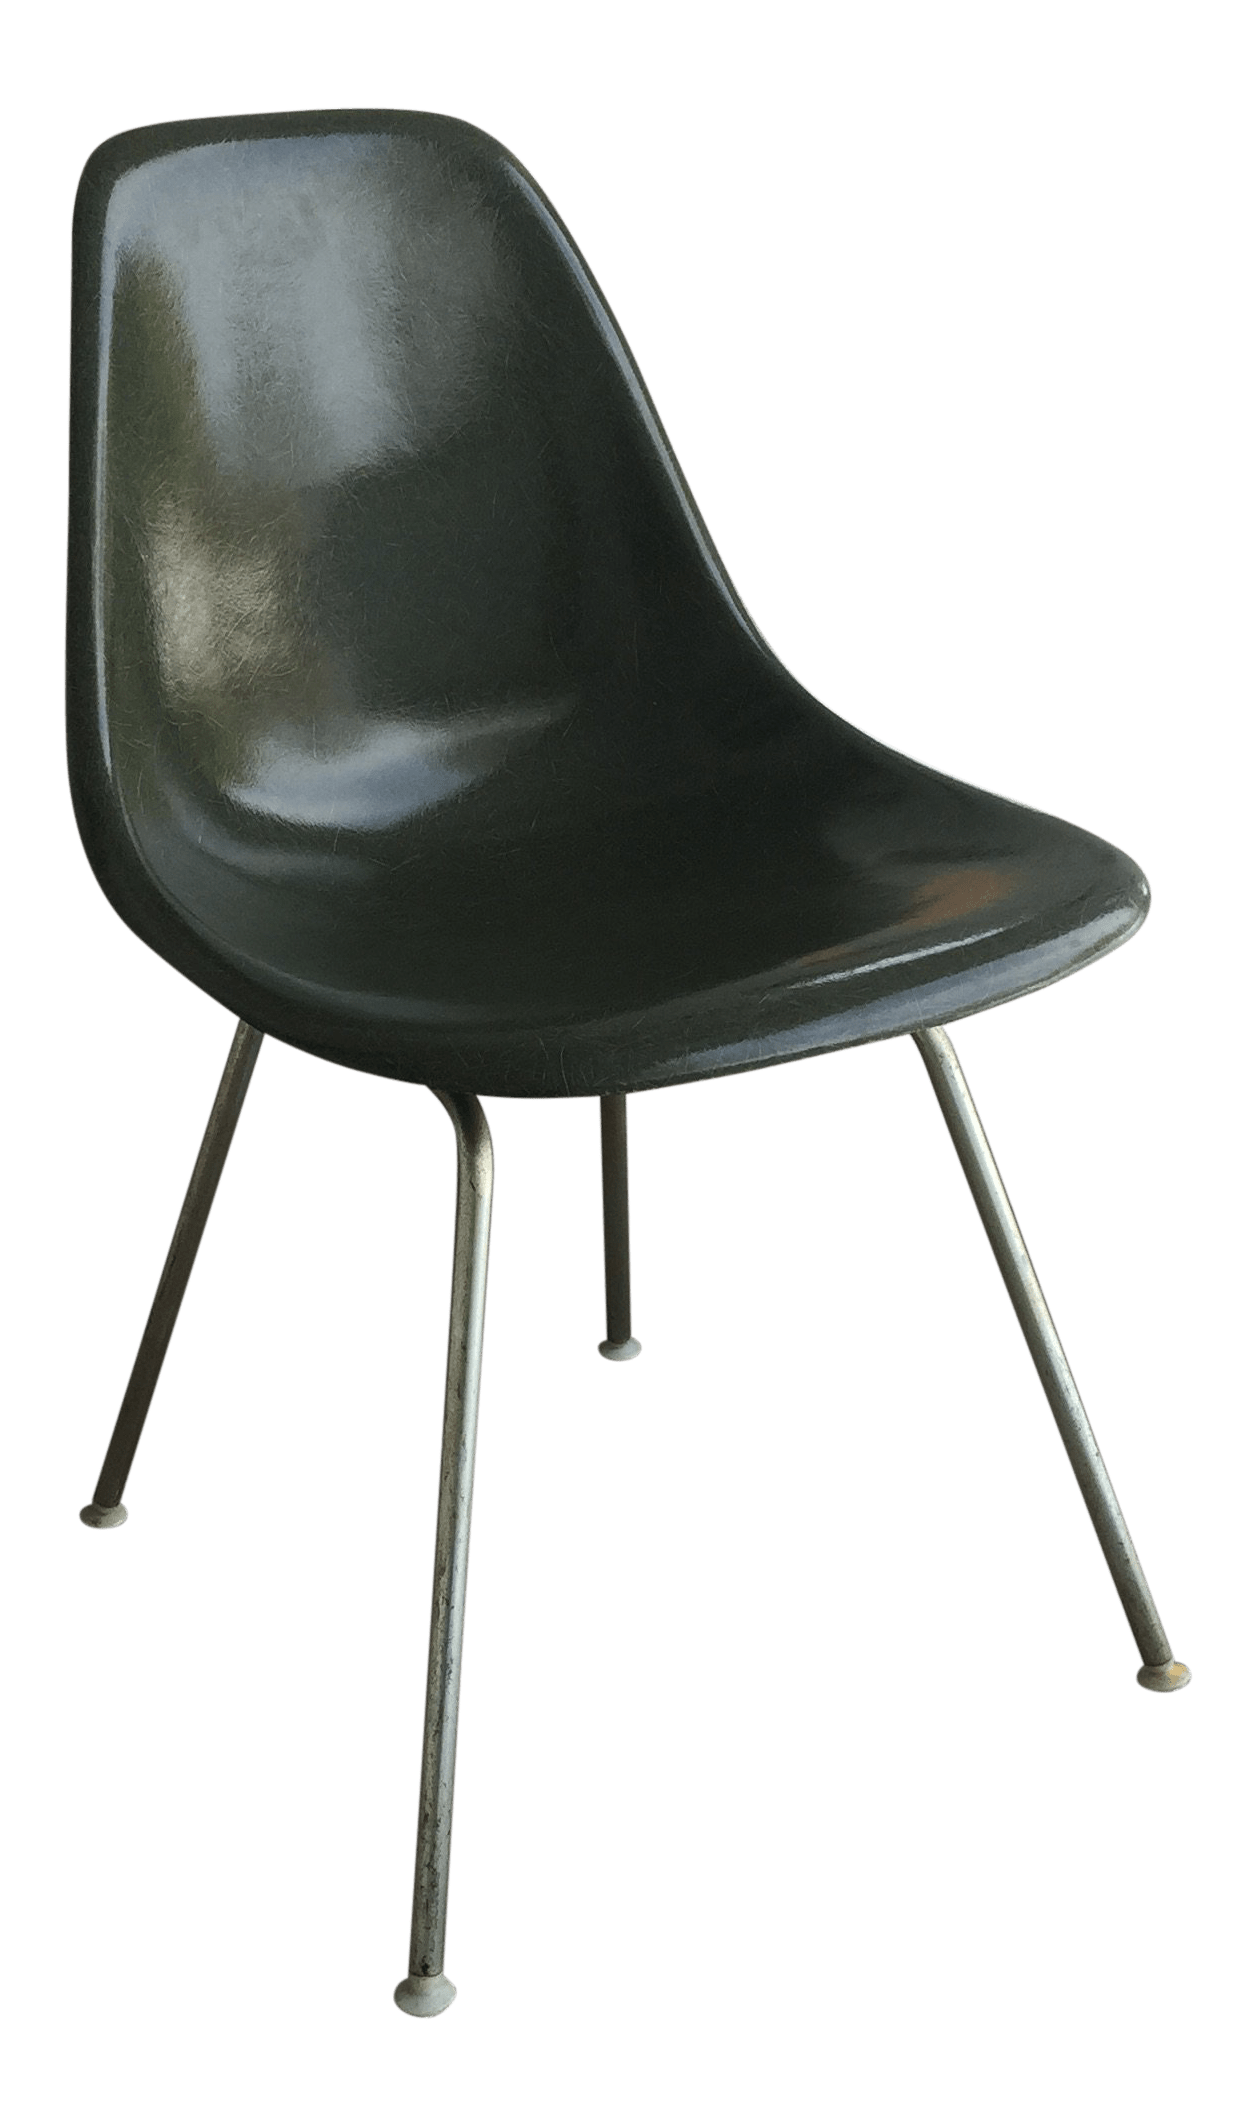 fiberglass shell chair high backed chairs uk 1950s vintage eames for herman miller olive green dark